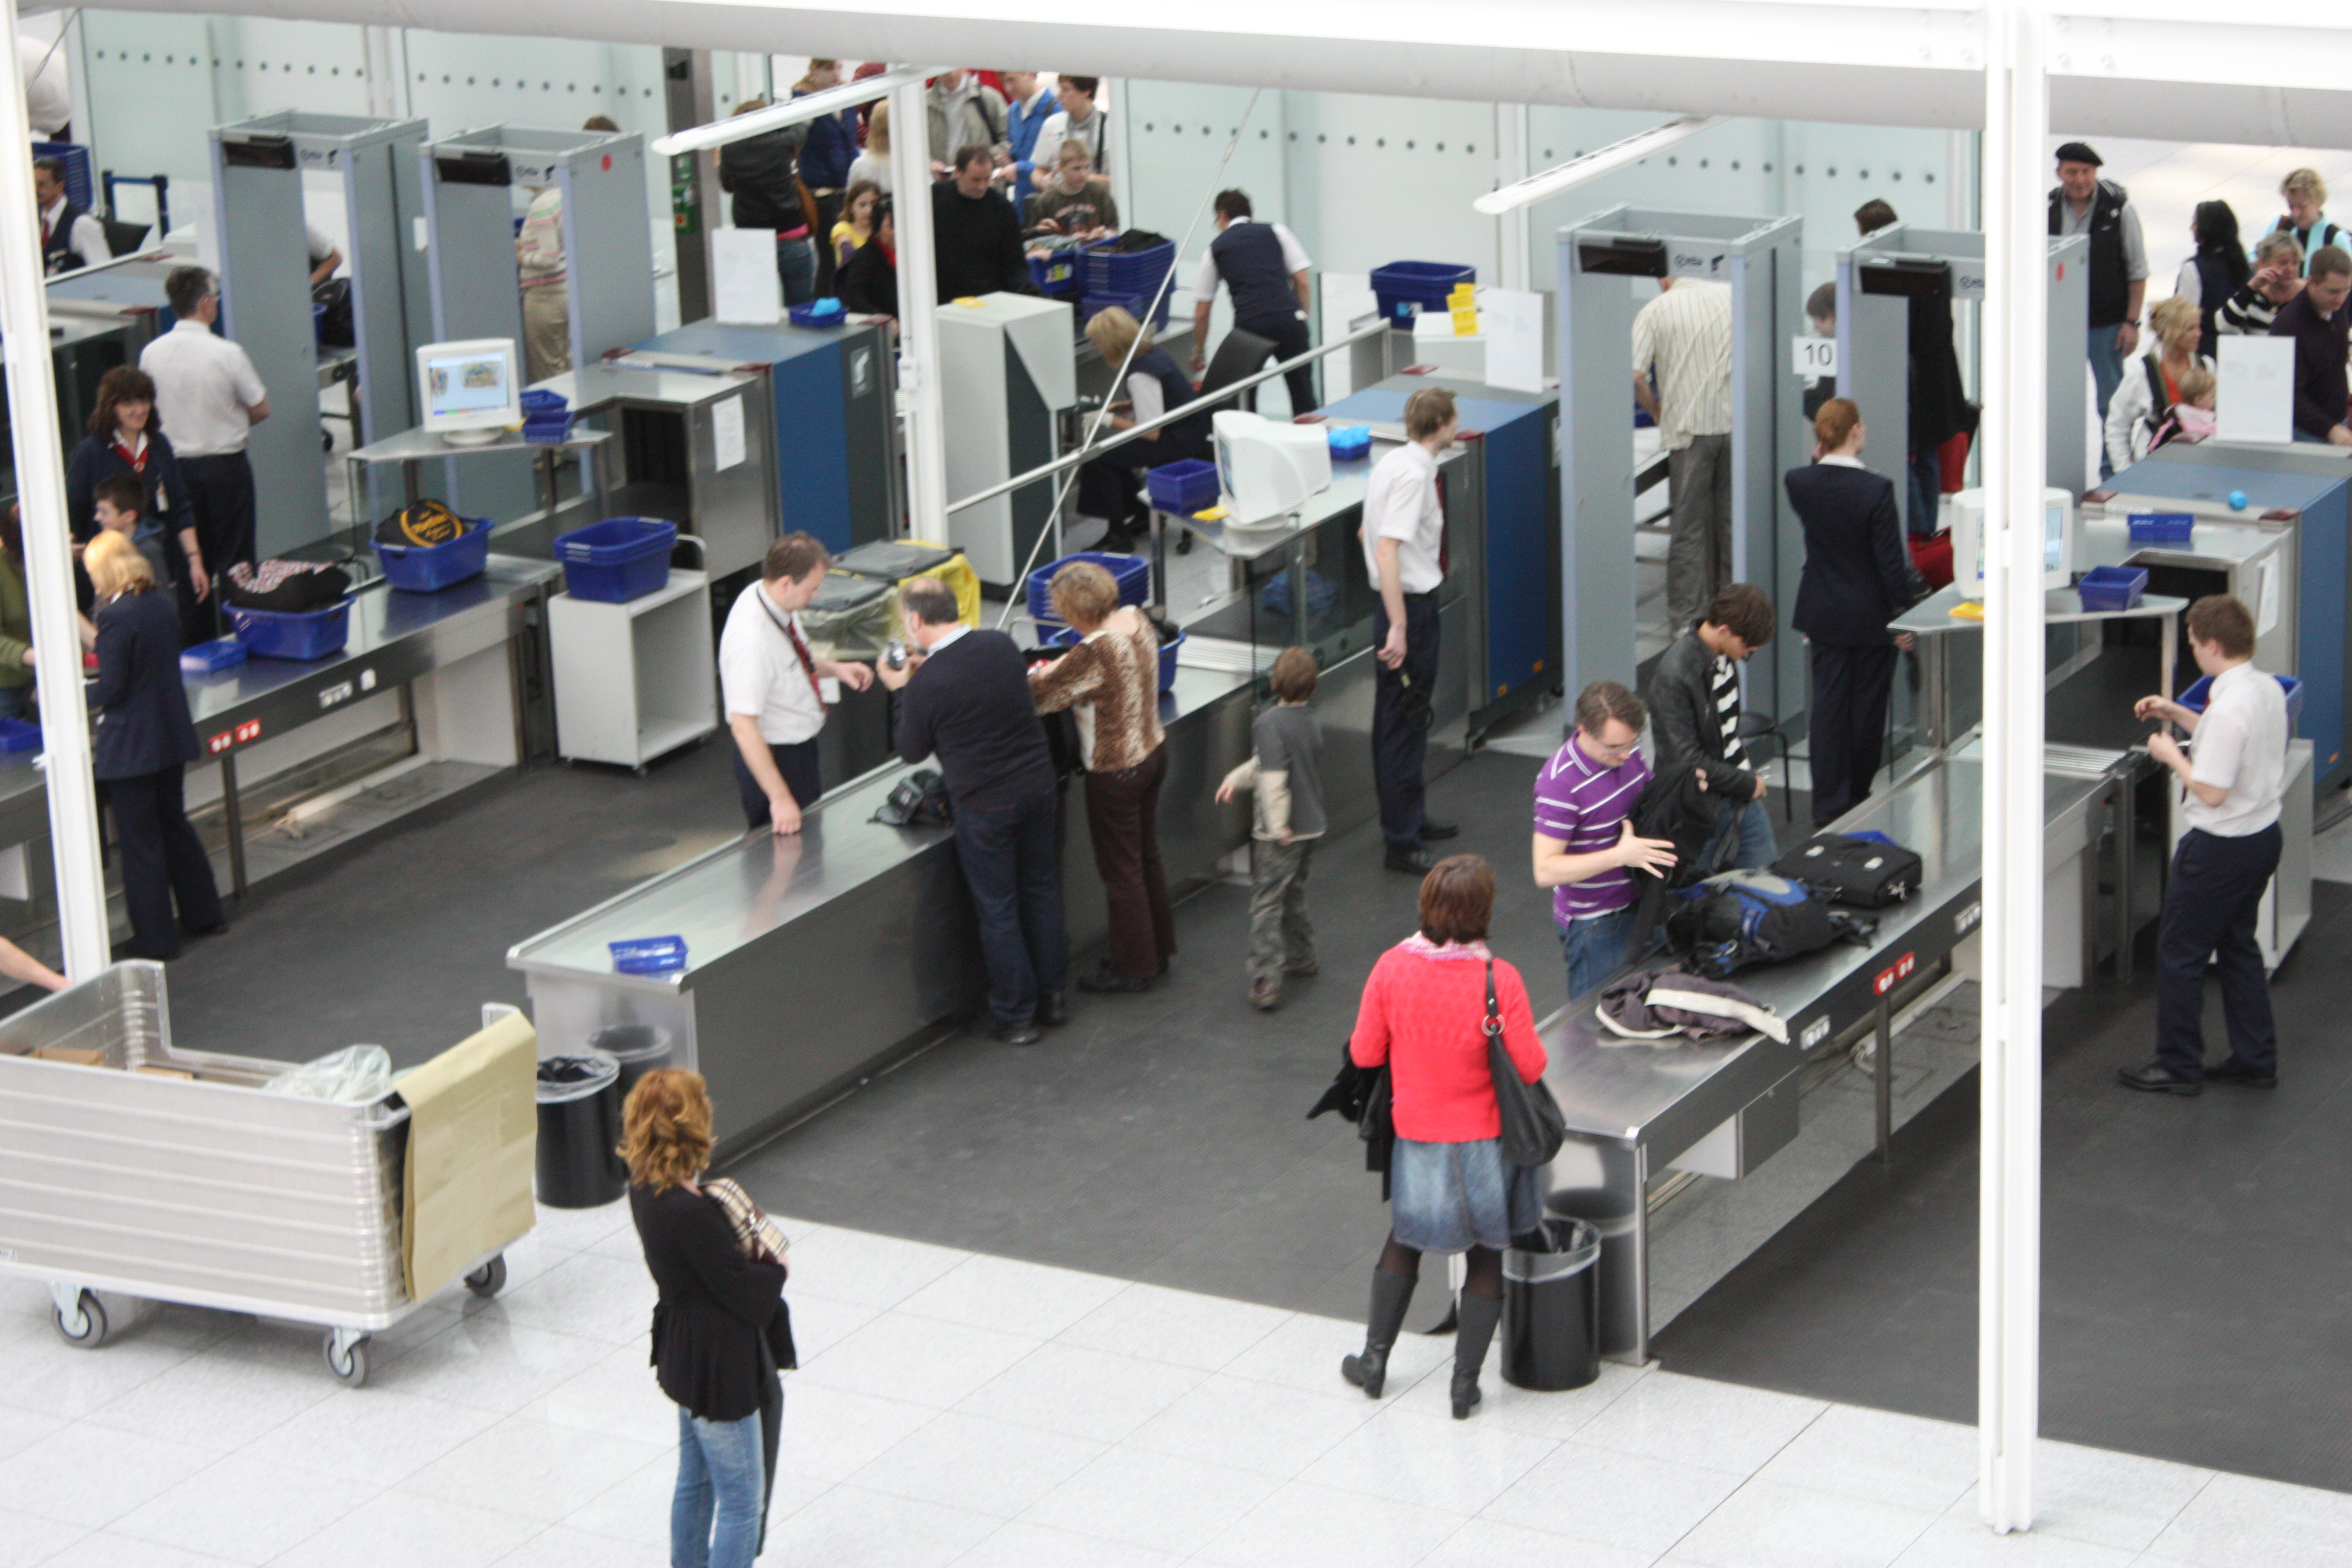 ACI World recognises 19 airports who have committed to customer experience